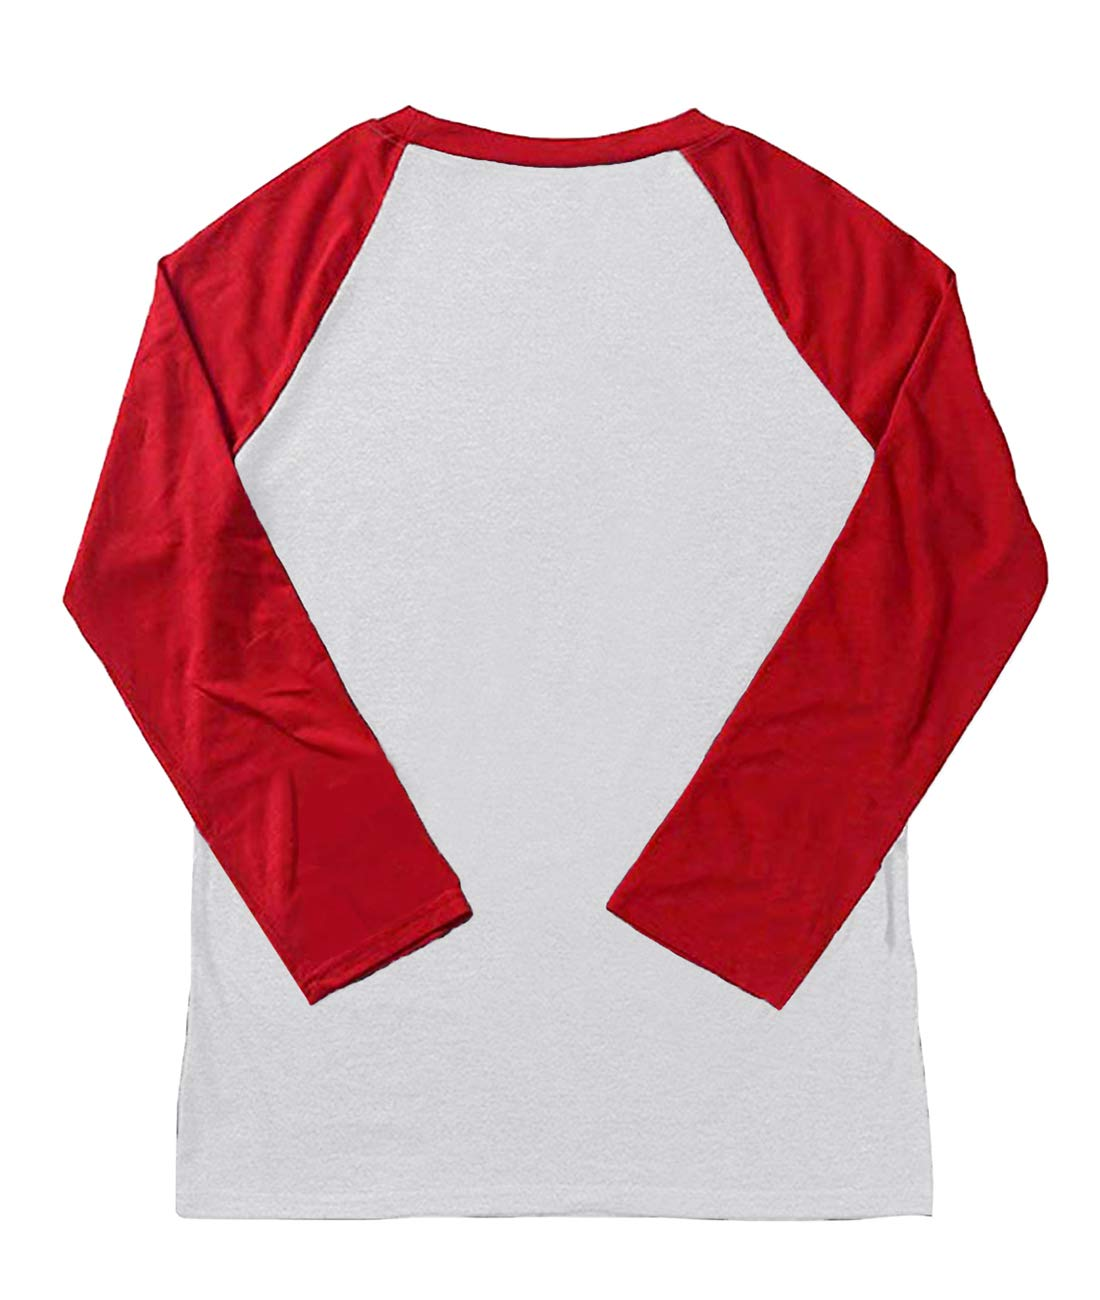 LeMarnia Christmas Shirts for Women Long Sleeve, Ladies Round Neck Raglan Funny Tops Casual Letter Print Patchwork Cute Graphic Tees Red1 L